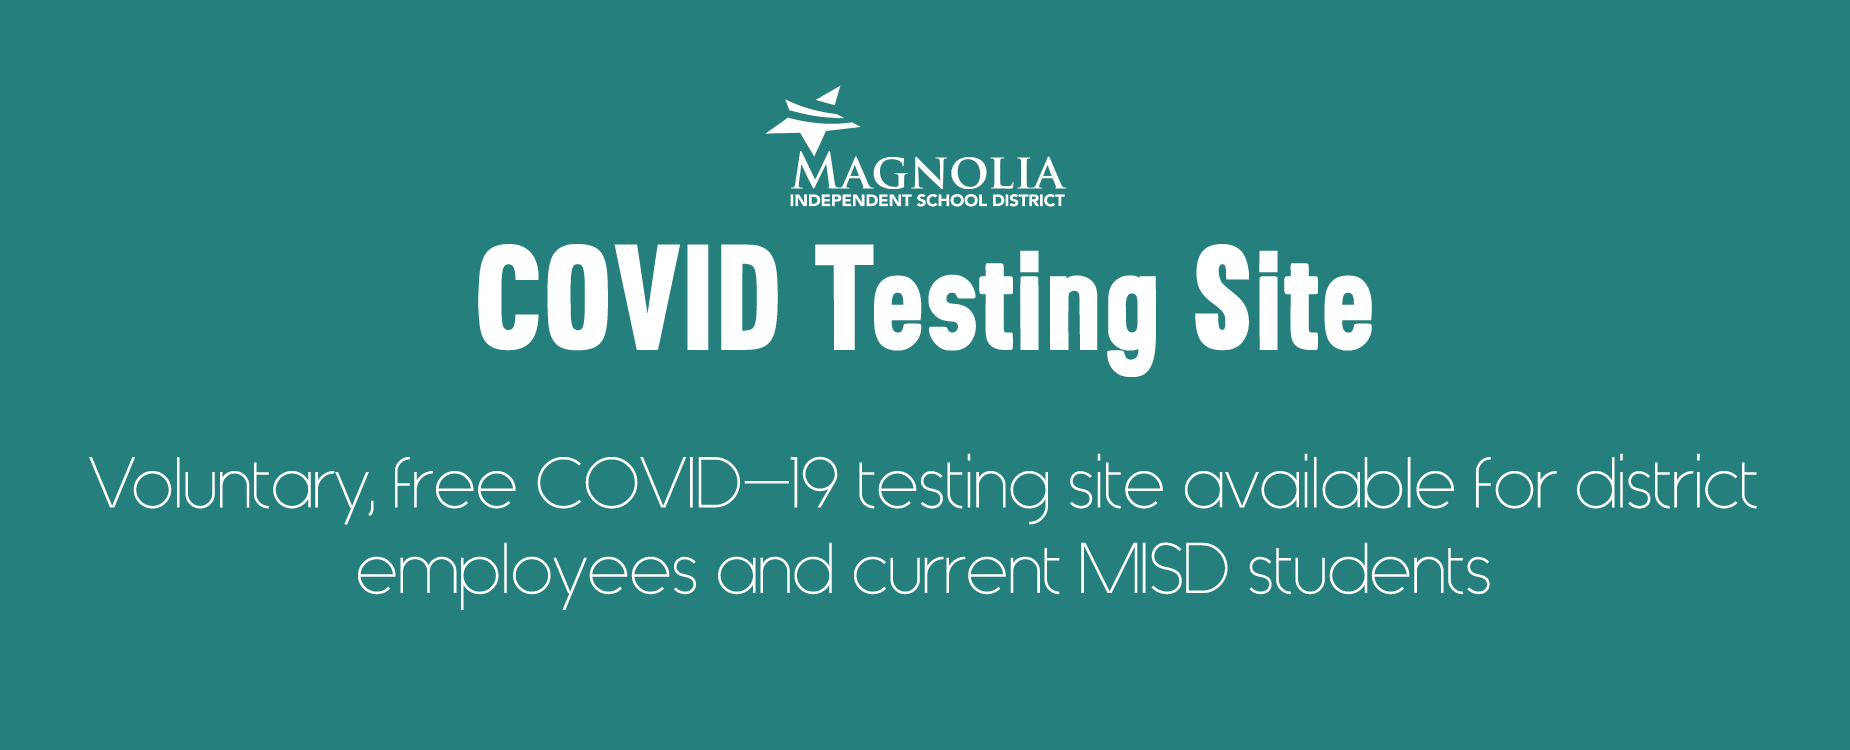 Click for Covid testing site information